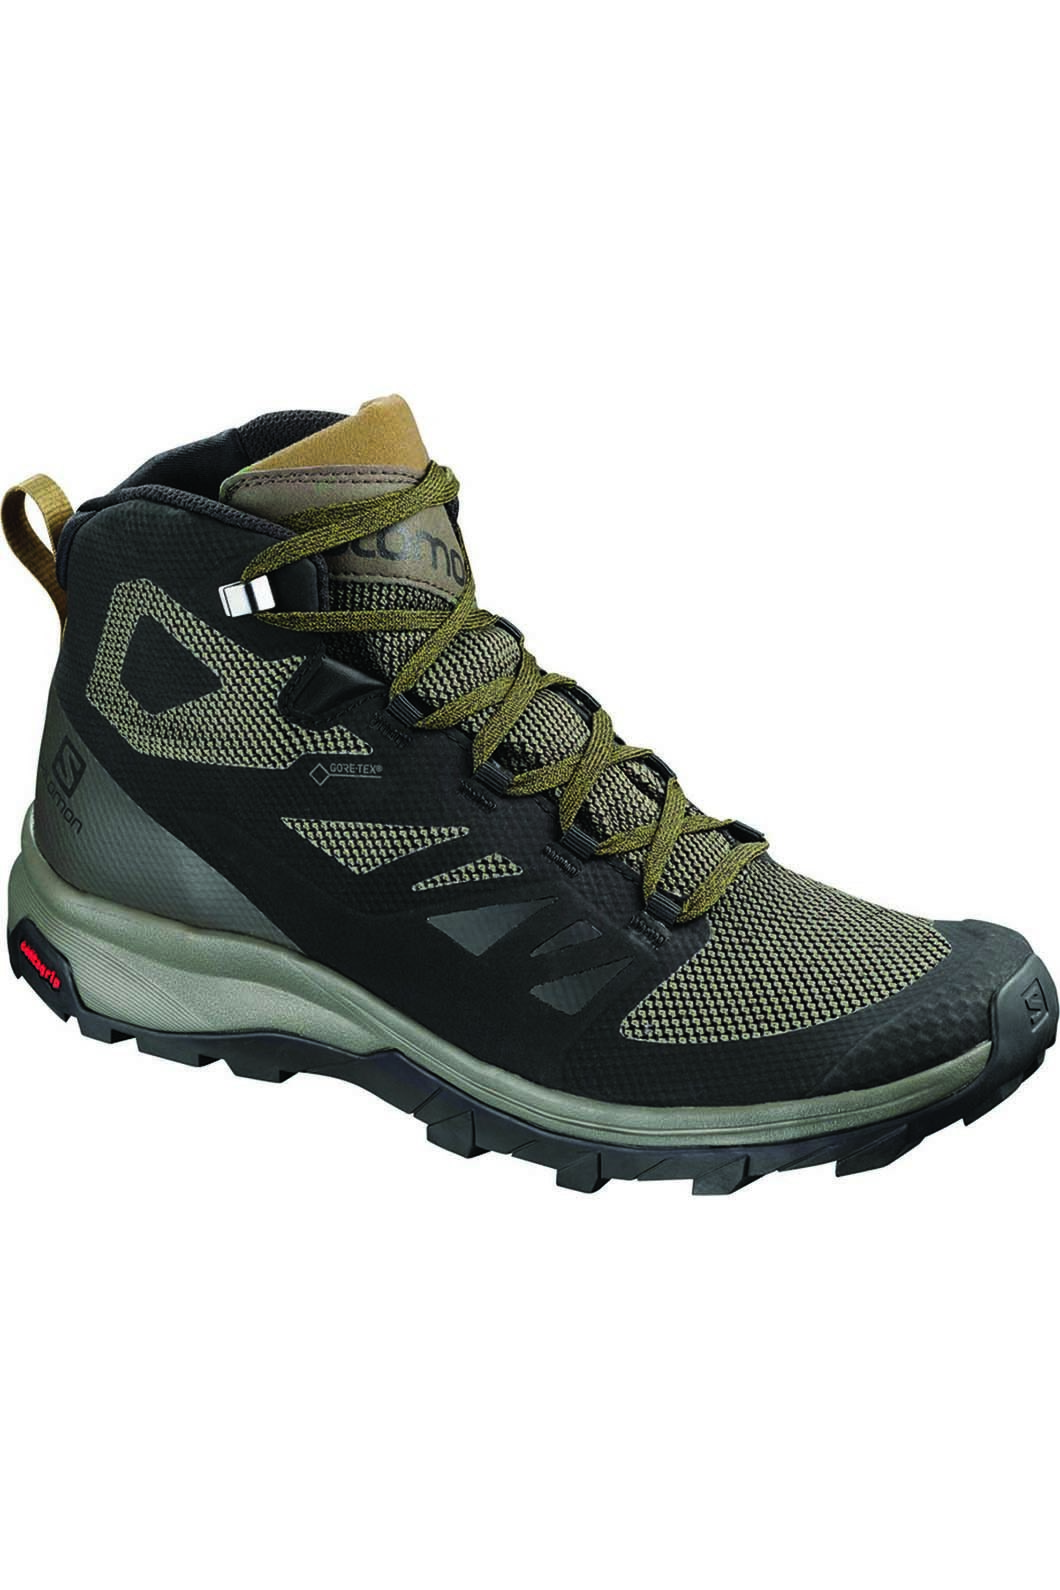 Salomon Men's OUTline Mid GTX Hiking Boot BelugaCapers, Blk/Beluga/Capers, hi-res